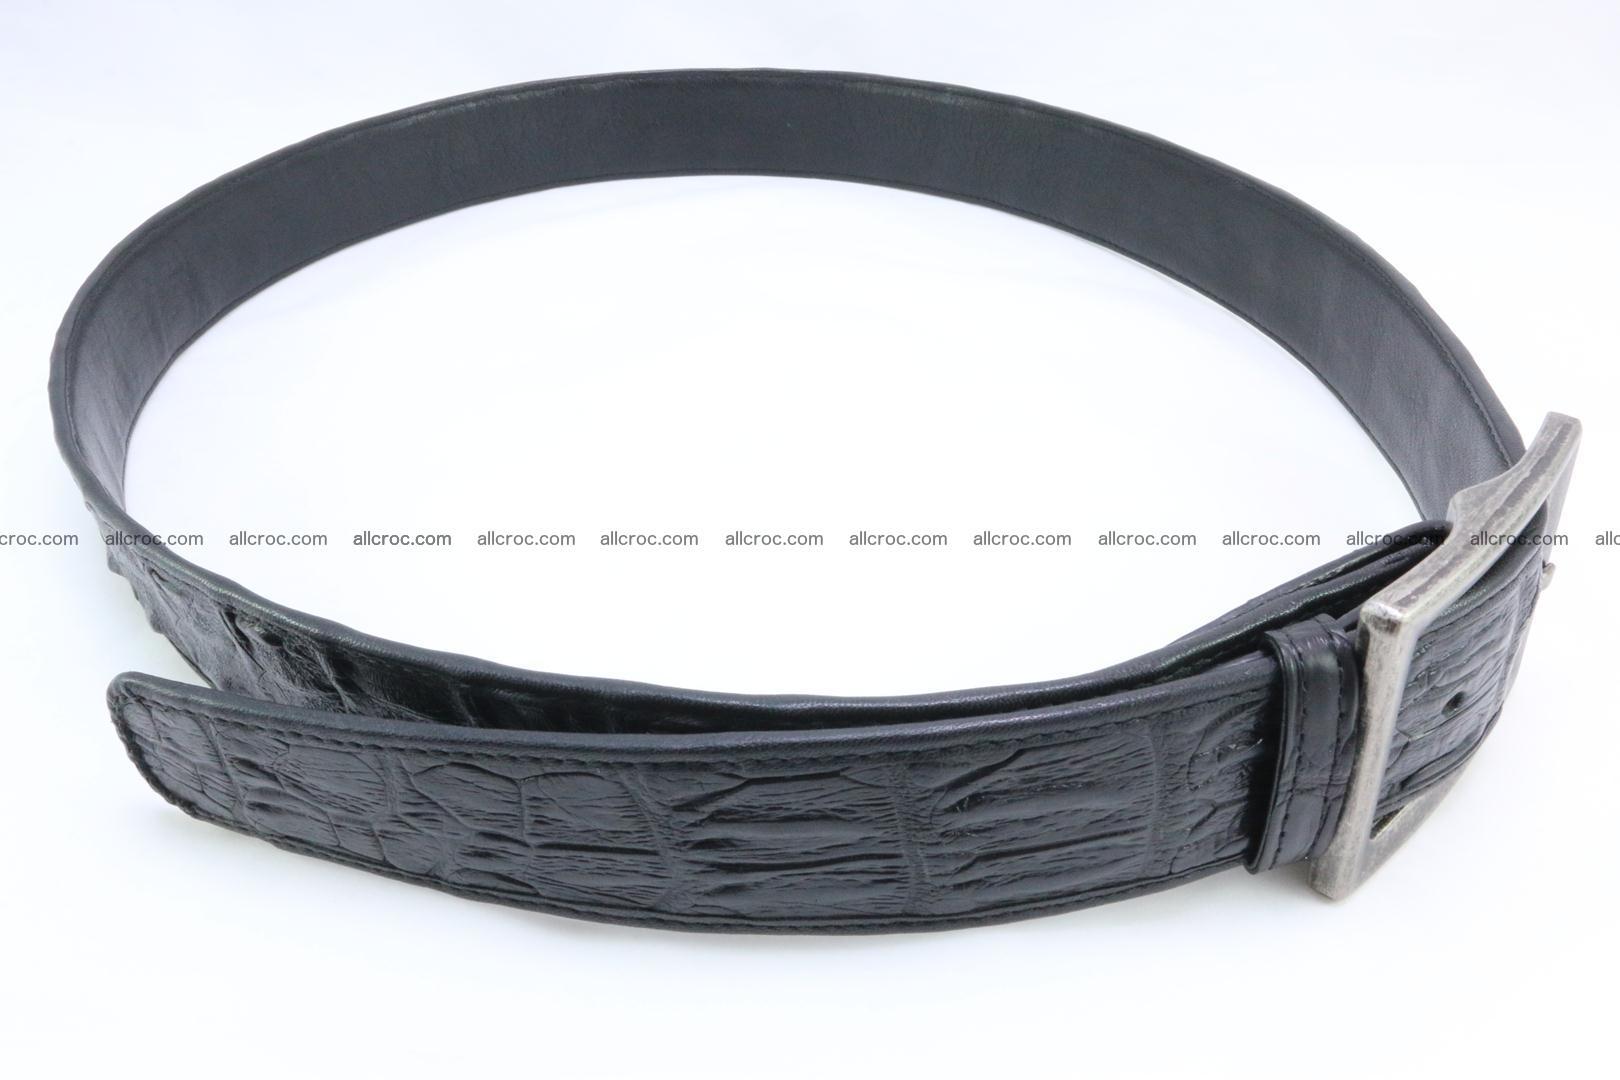 Genuine crocodile leather hornback belt 071 Foto 2